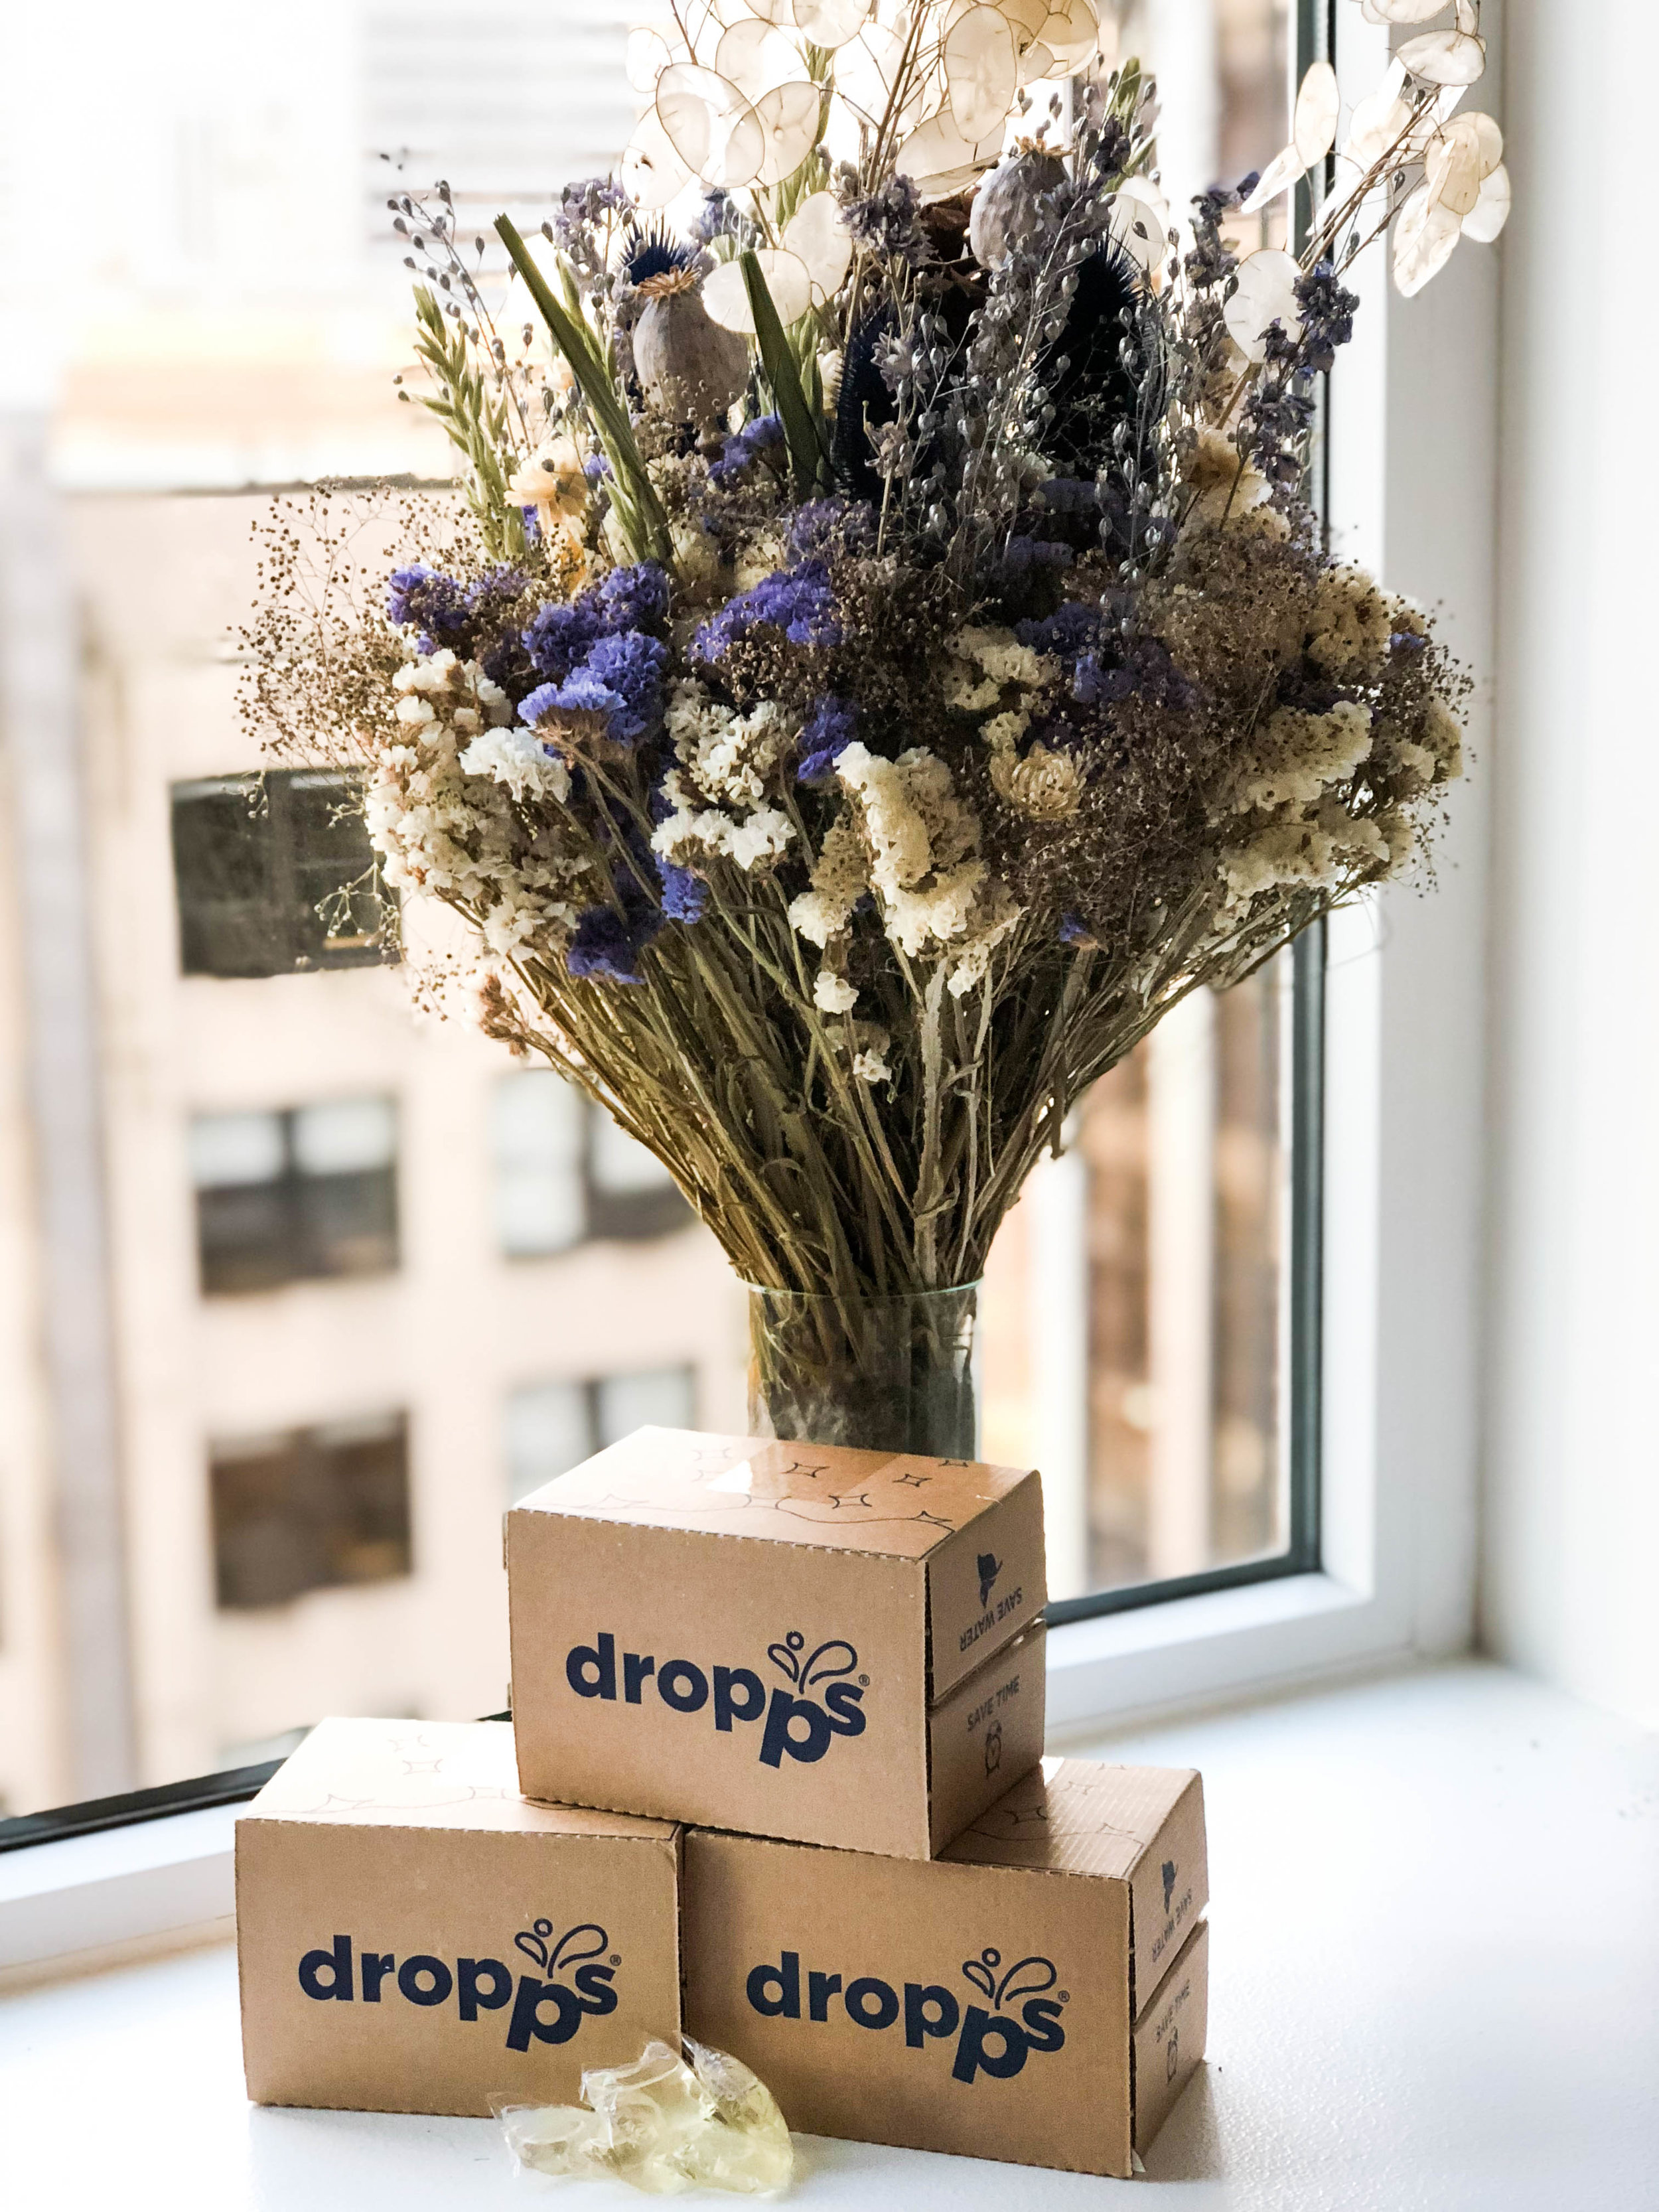 Featuring  Dropps  laundry detergent + recycled glass vase from  Newly